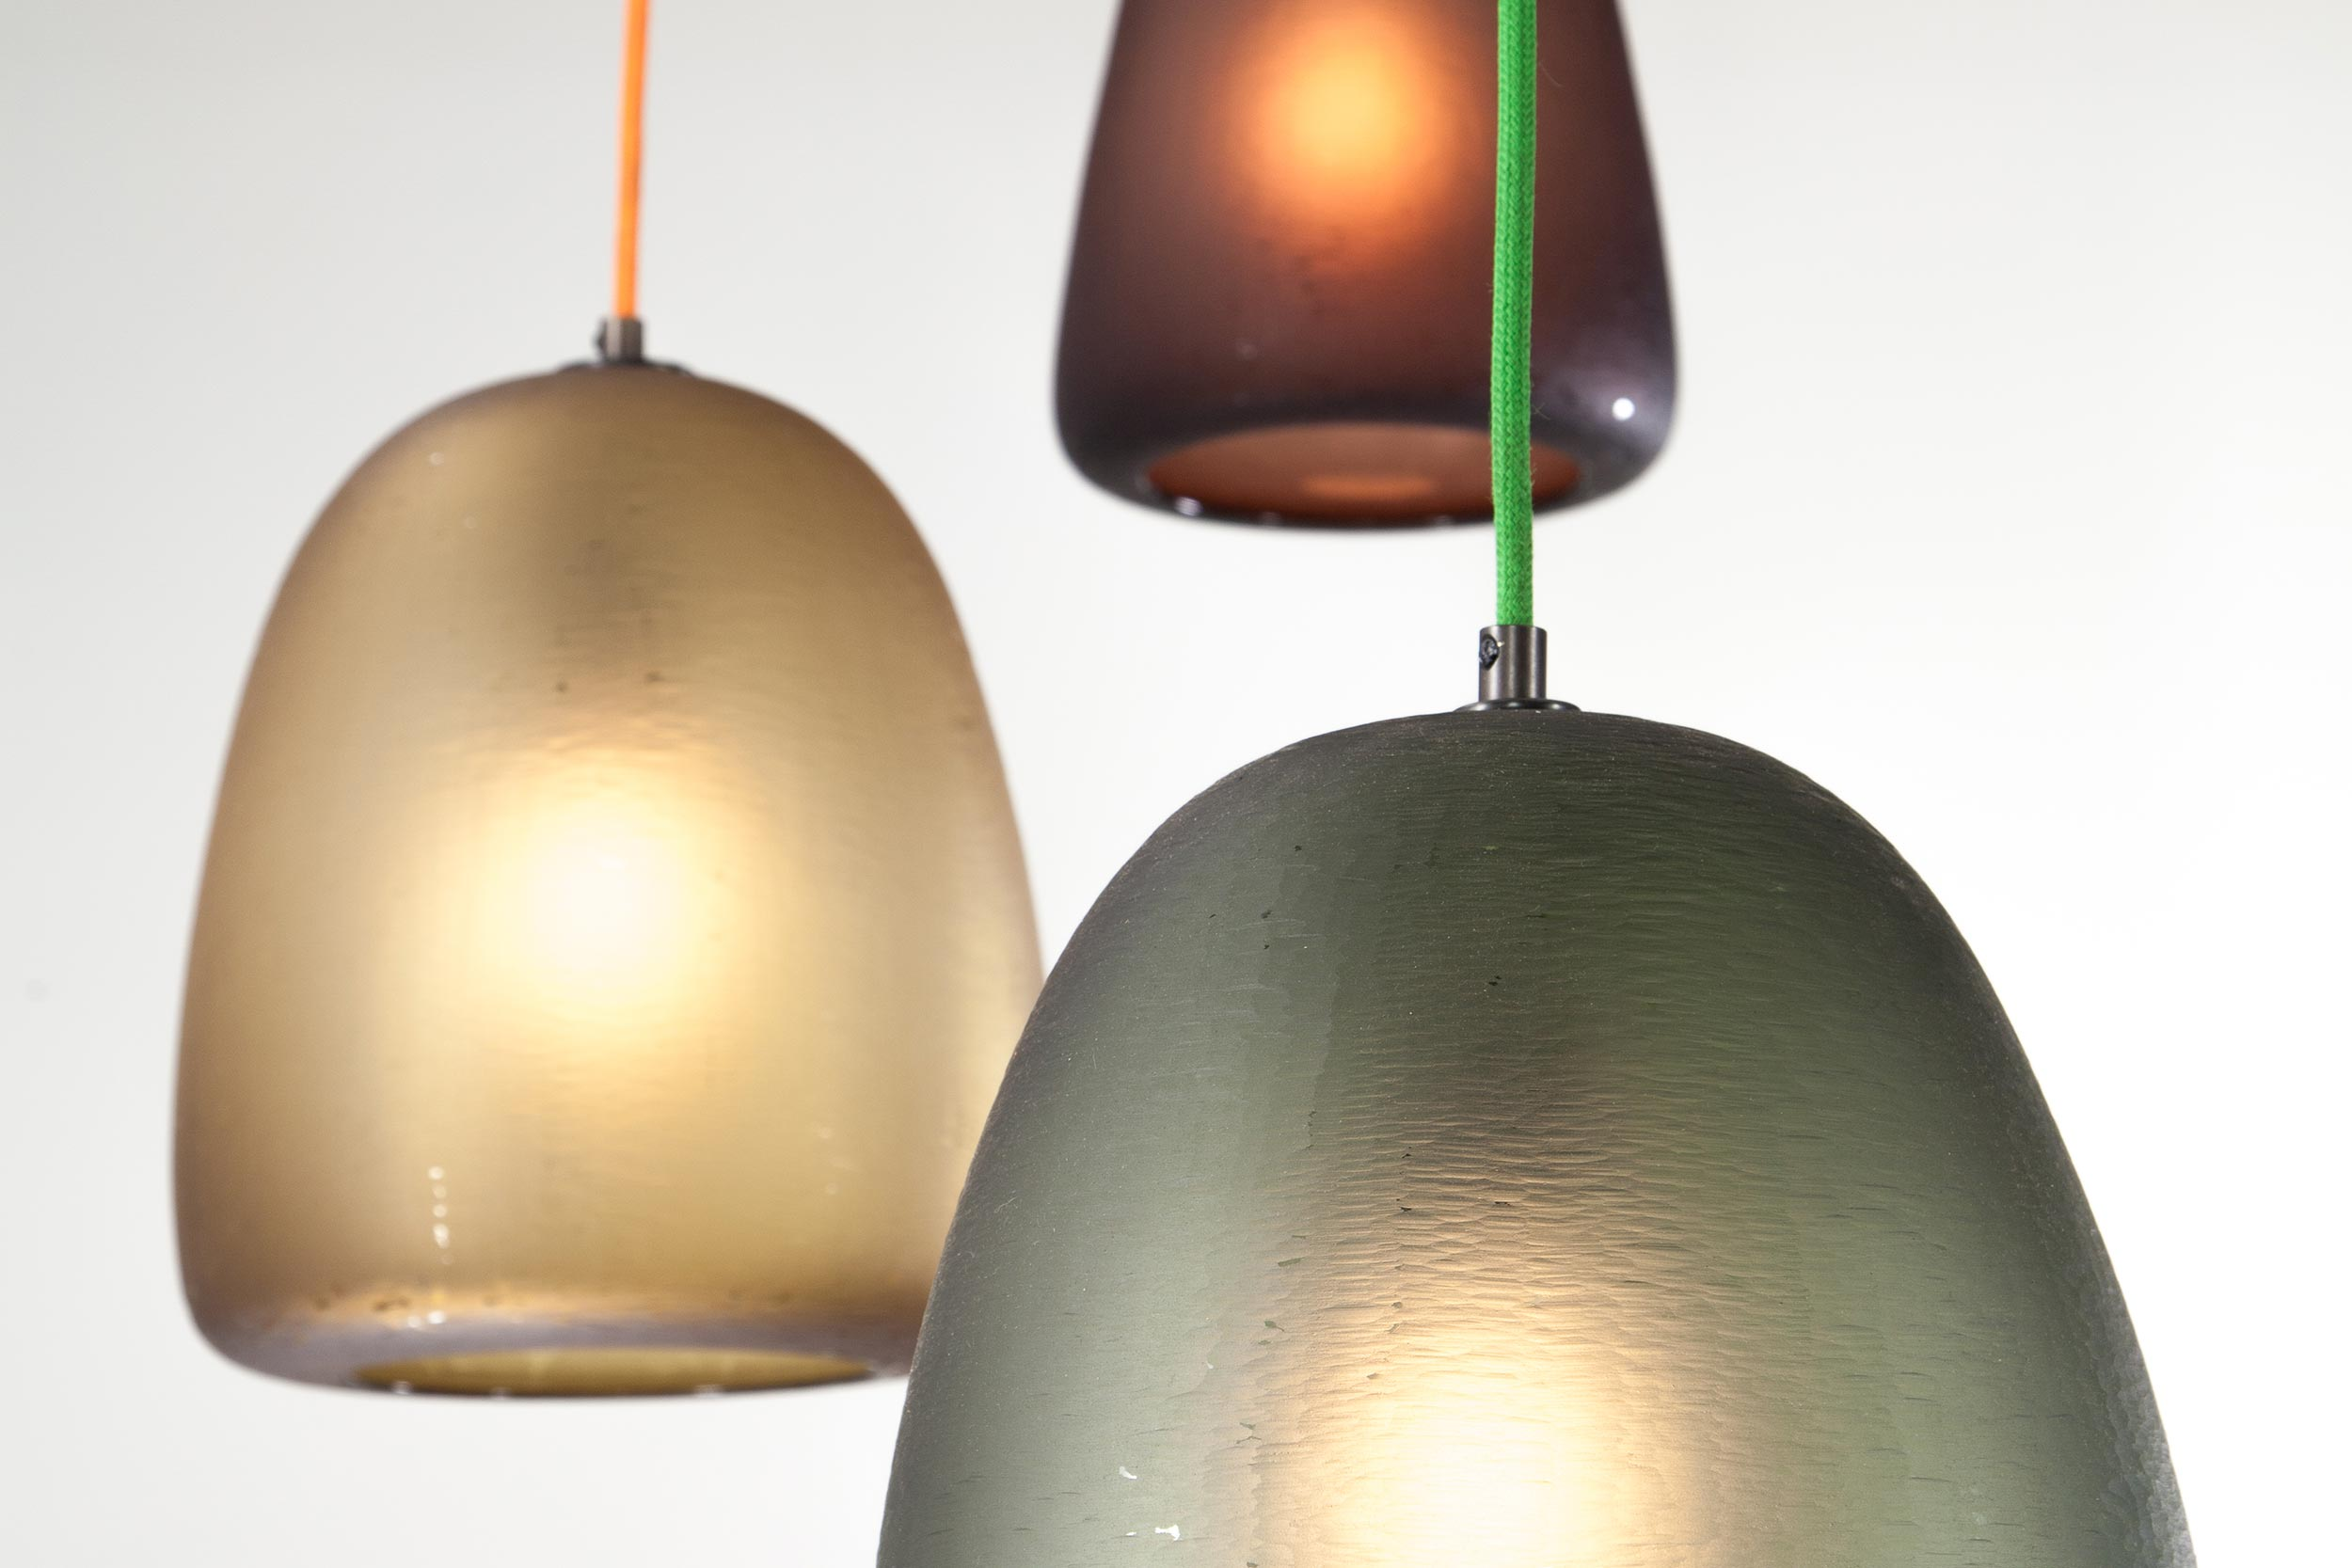 Tokenlights and their contemporary light fixtures tokenlights and their contemporary light fixtures contemporary light fixtures tokenlights and their contemporary light fixtures tokenlights arubaitofo Choice Image